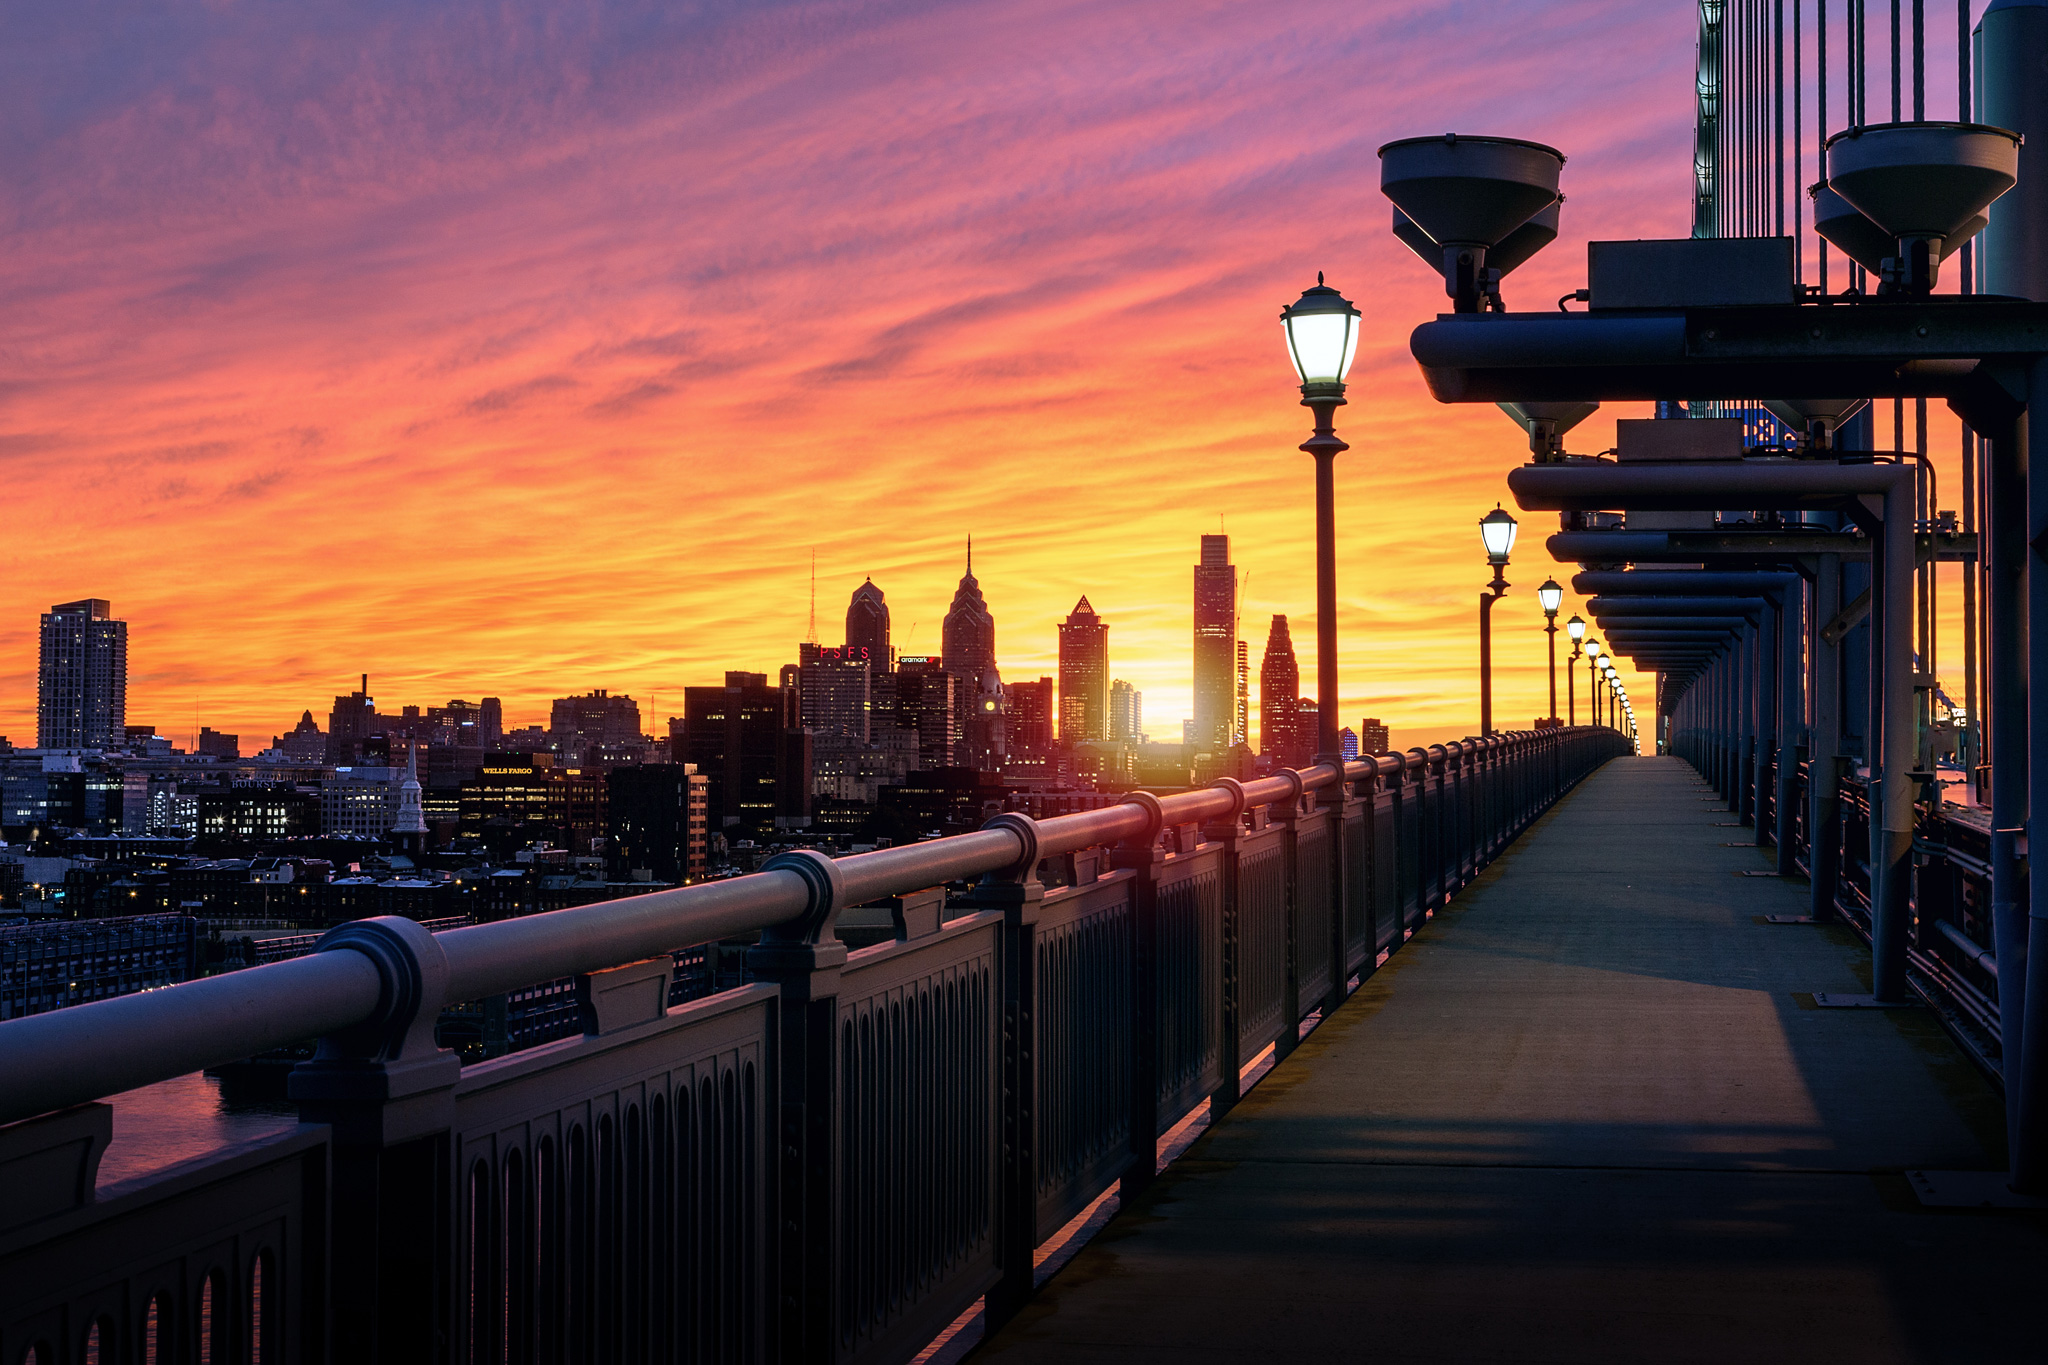 ben-franklin-bridge-incredible-sunset-september-2016-jason-gambone-222